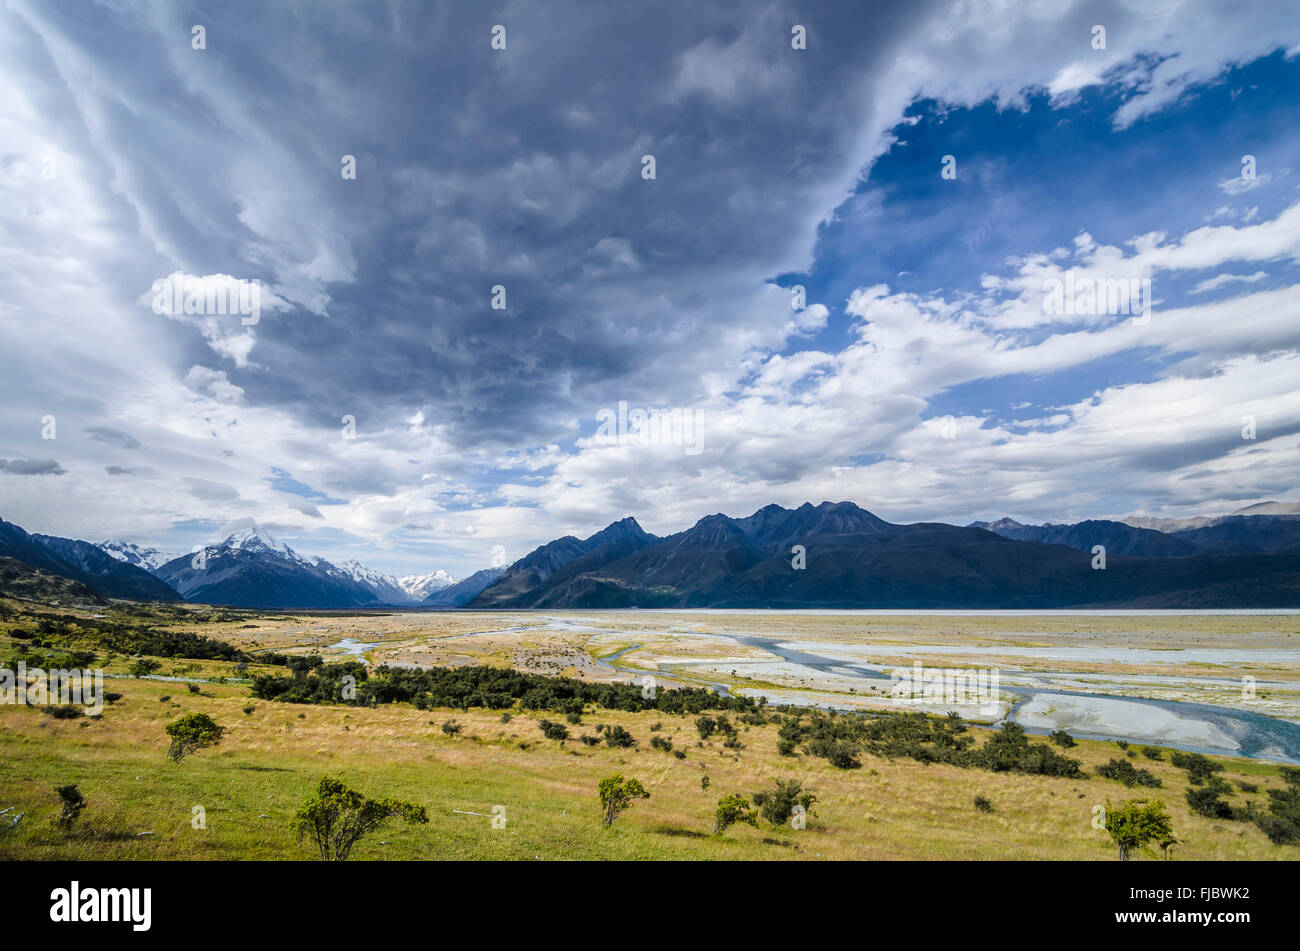 Grassland in front of the wide riverbed of the Tasman River, dramatic clouds, Mount Cook National Park, Pukaki - Stock Image